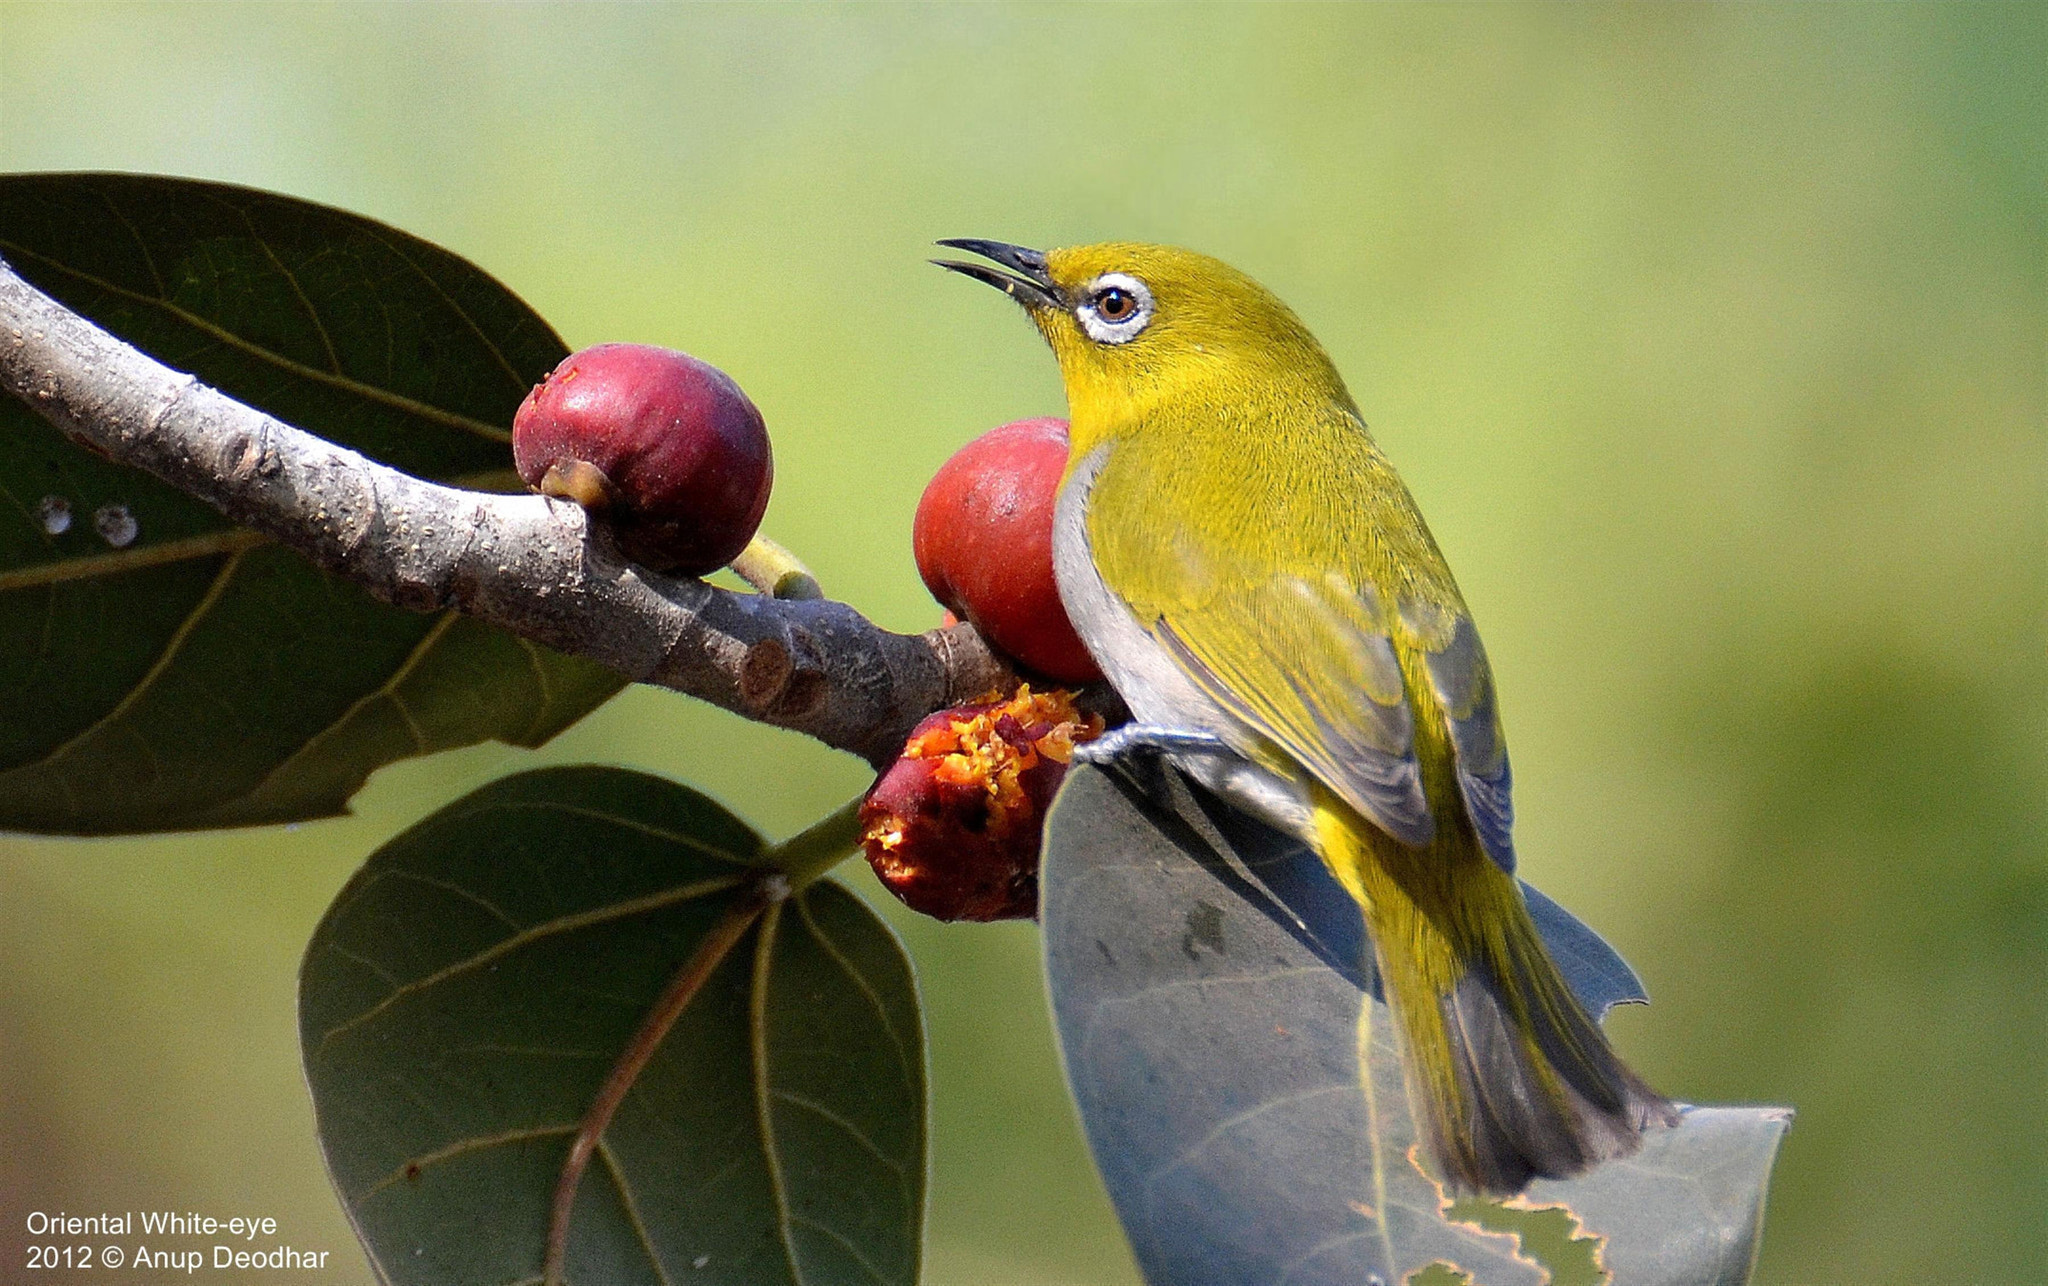 Photograph Oriental White-eye by Anup Deodhar on 500px